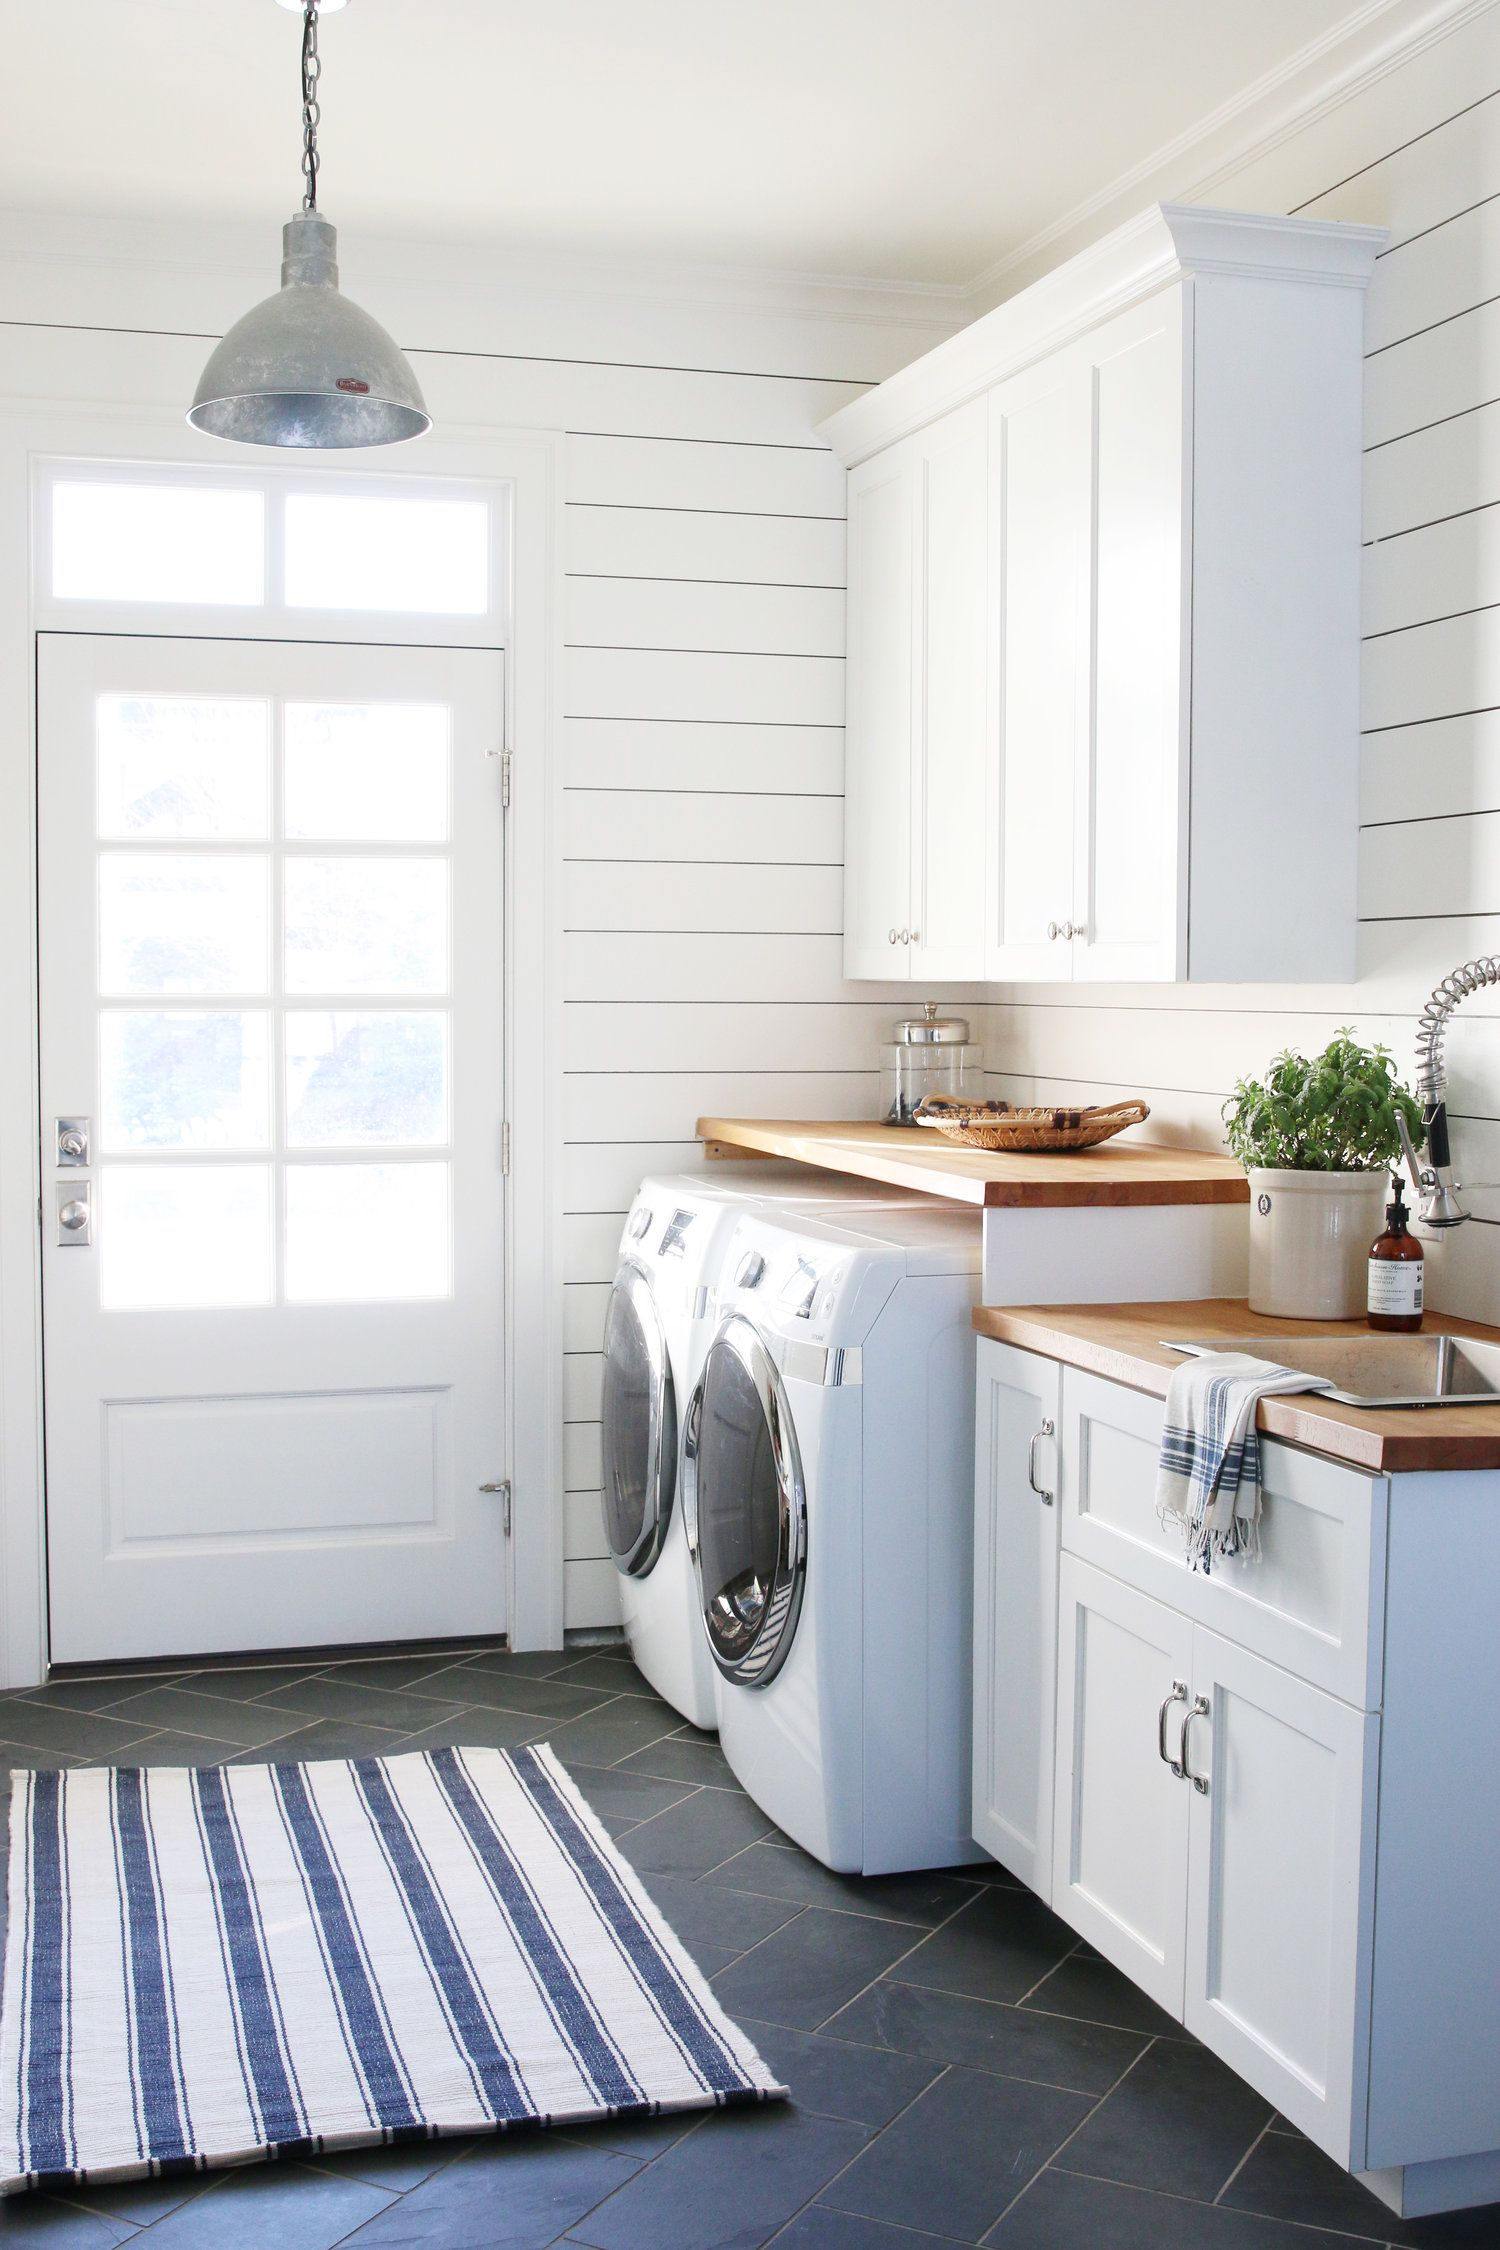 Get the Look: Laundry Room | Slate flooring, Laundry rooms and ...